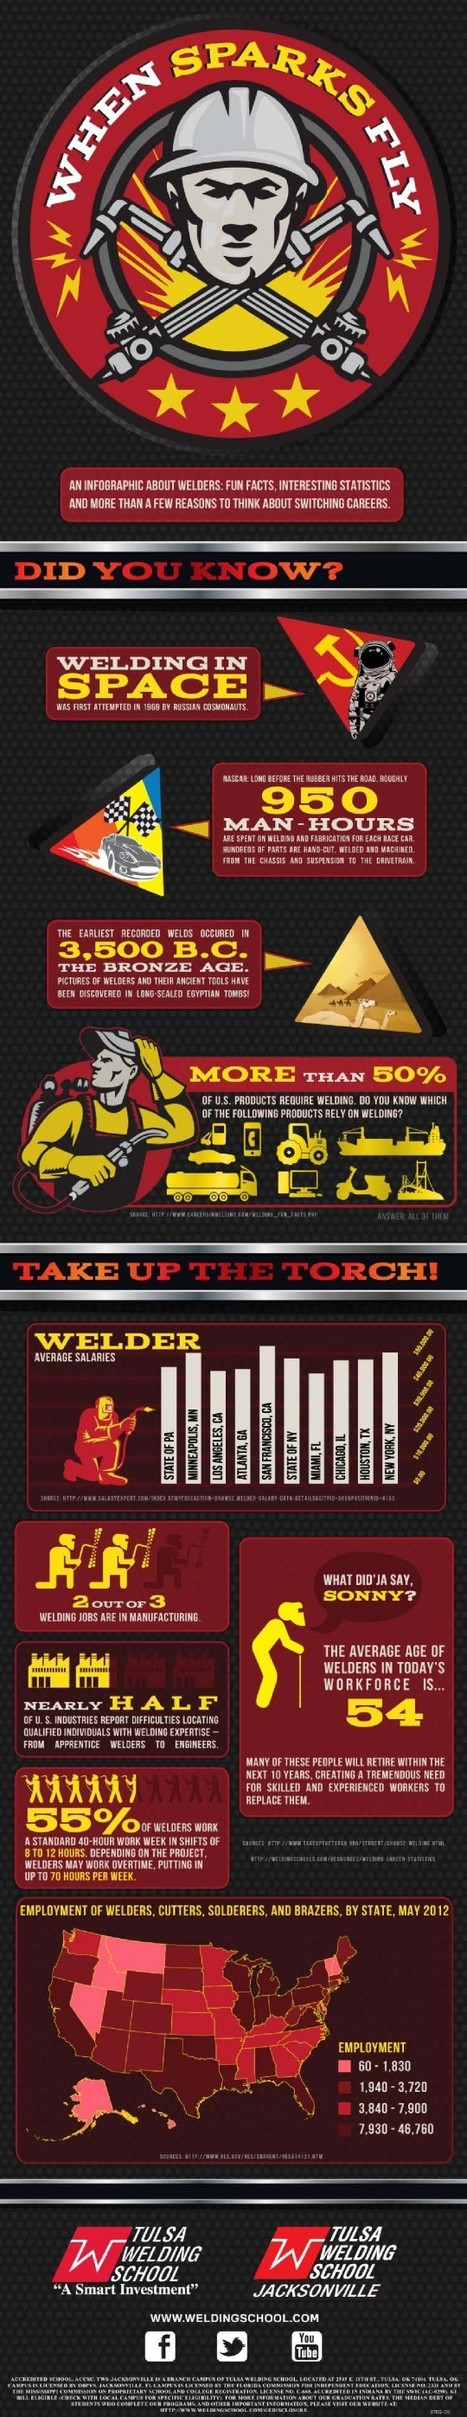 Welding Fun Facts & Statistics to Make You Switch Your Career | Direct Axis Creative, LLC | Scoop.it